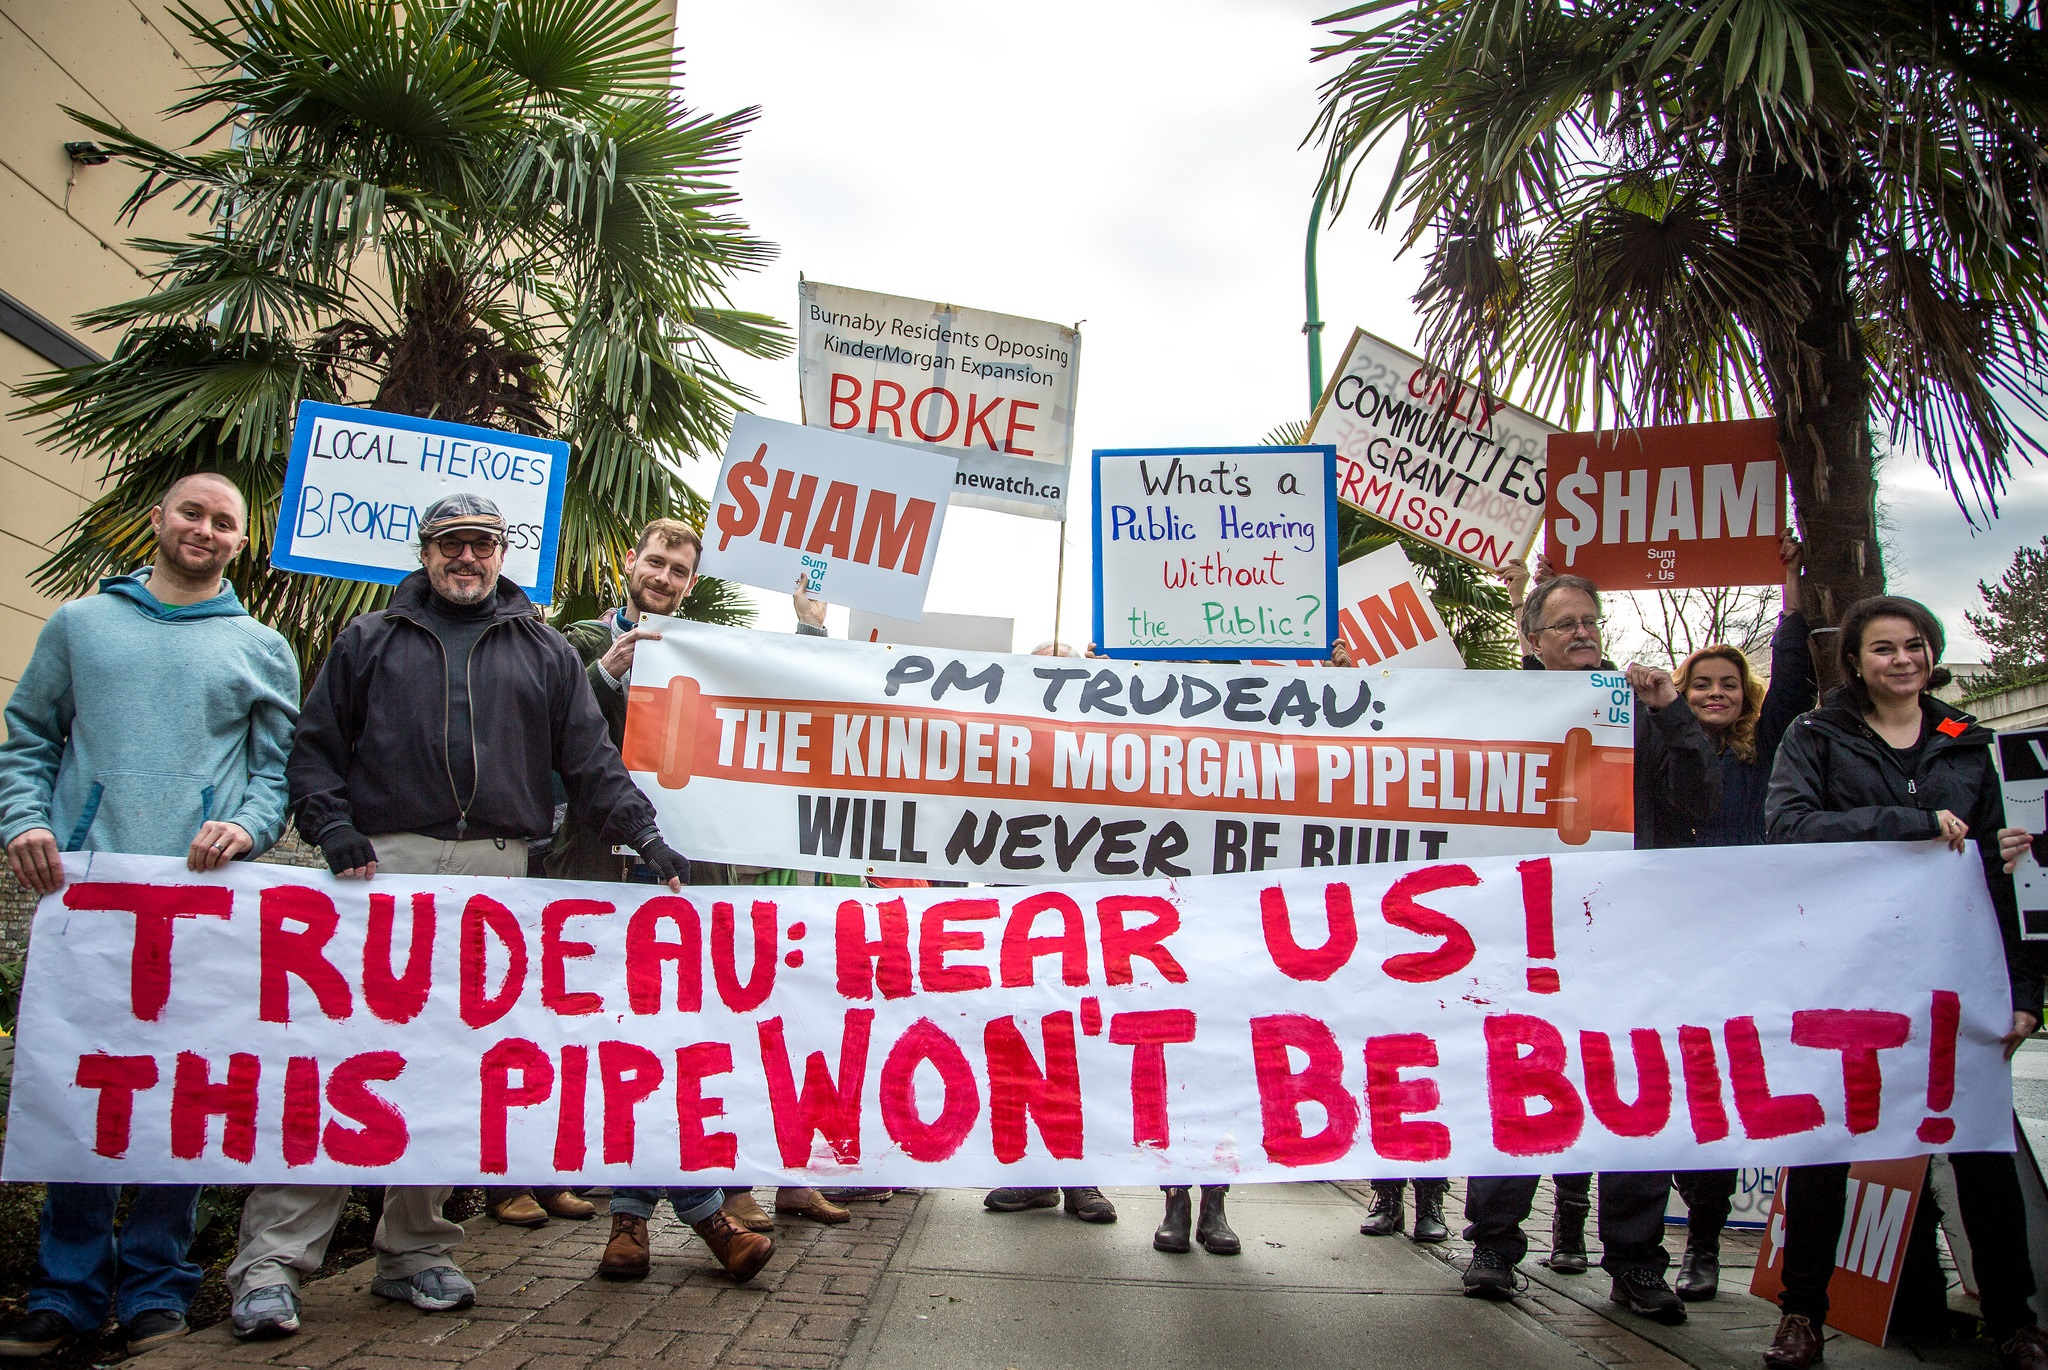 Sham-Kinder-Morgan.jpg